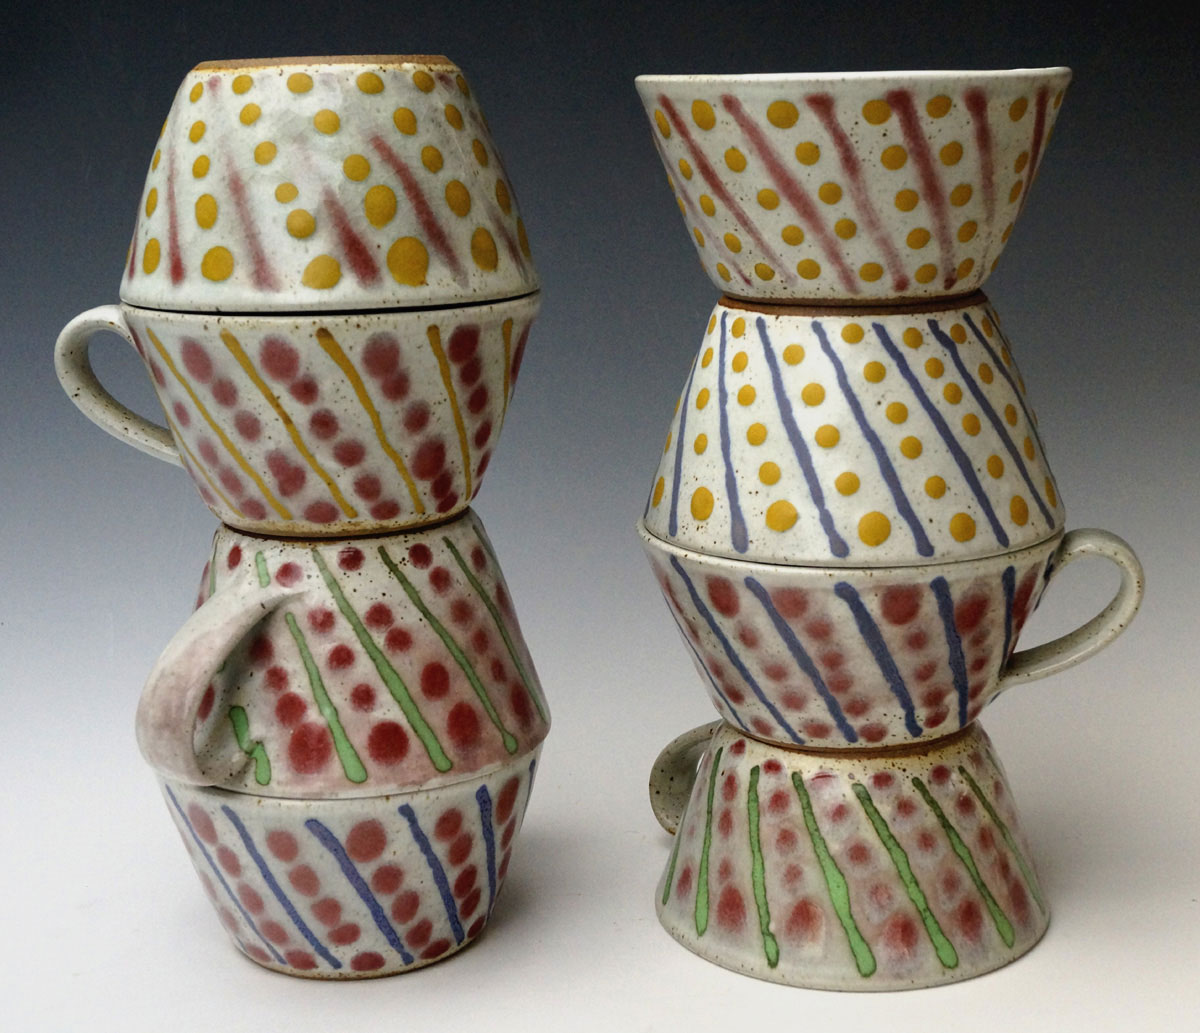 Cups with Dot/Stripe decoration